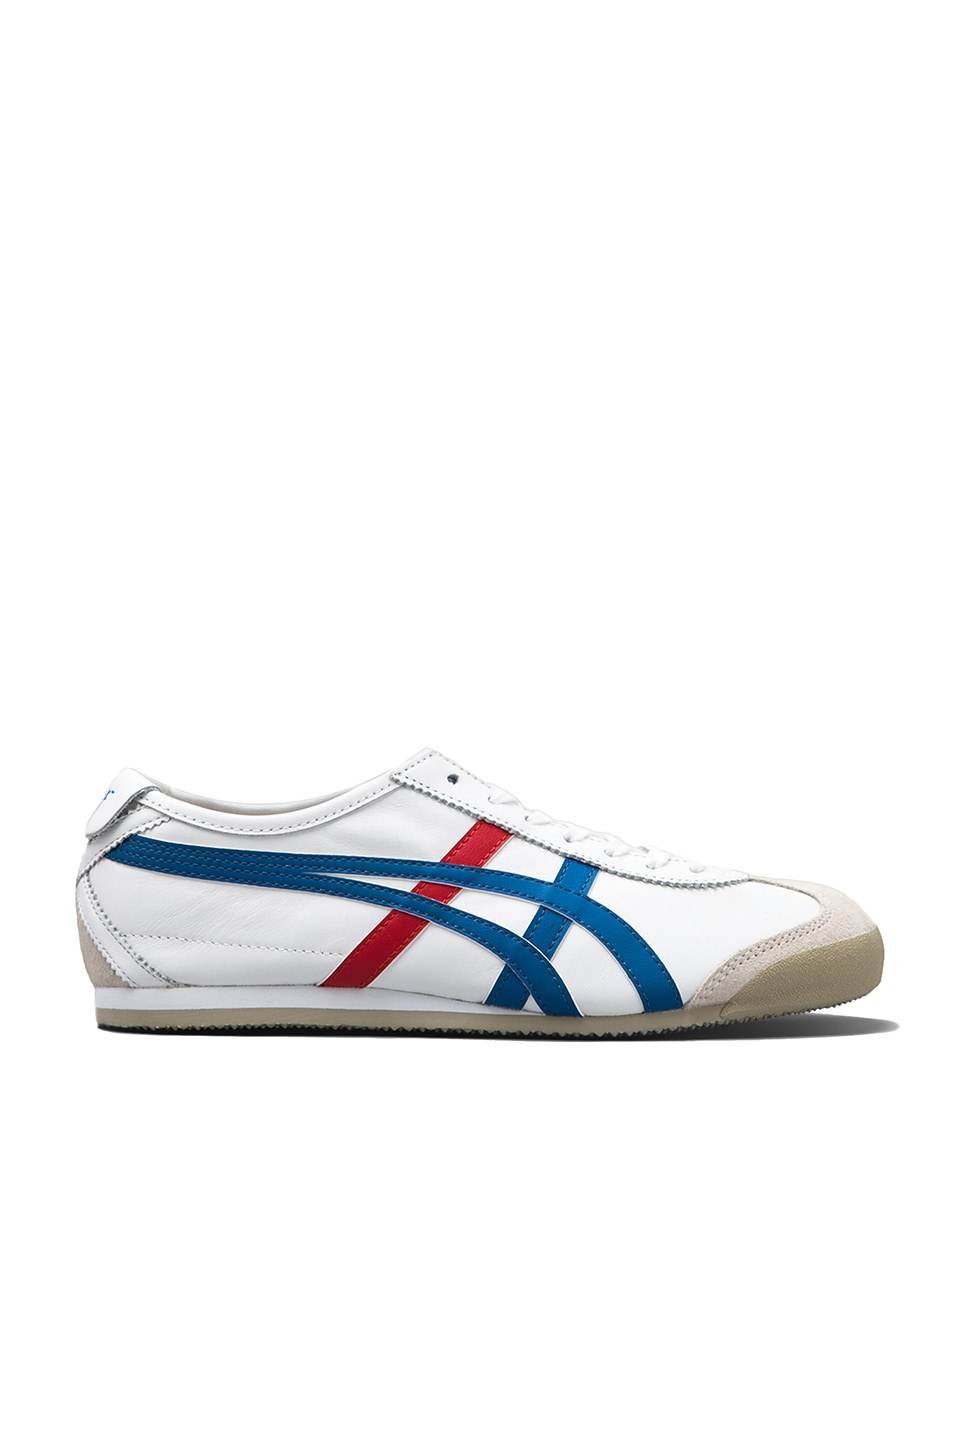 Onitsuka Tiger Mexico 66 in White/Blue